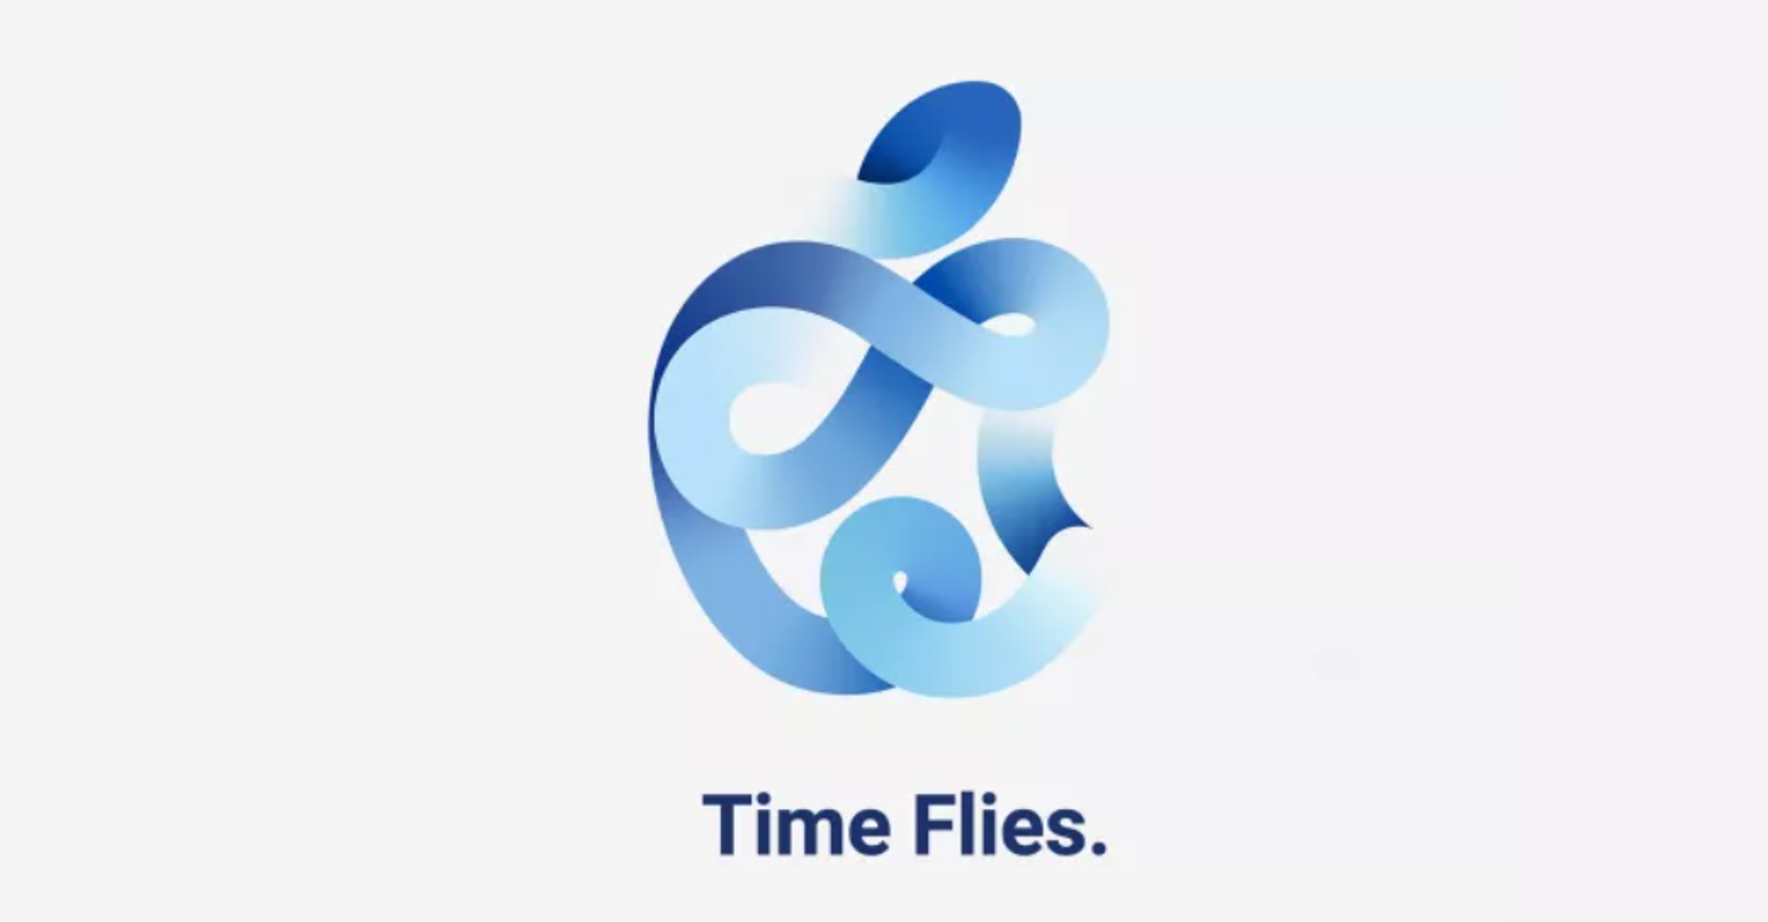 Apple event Time Flies